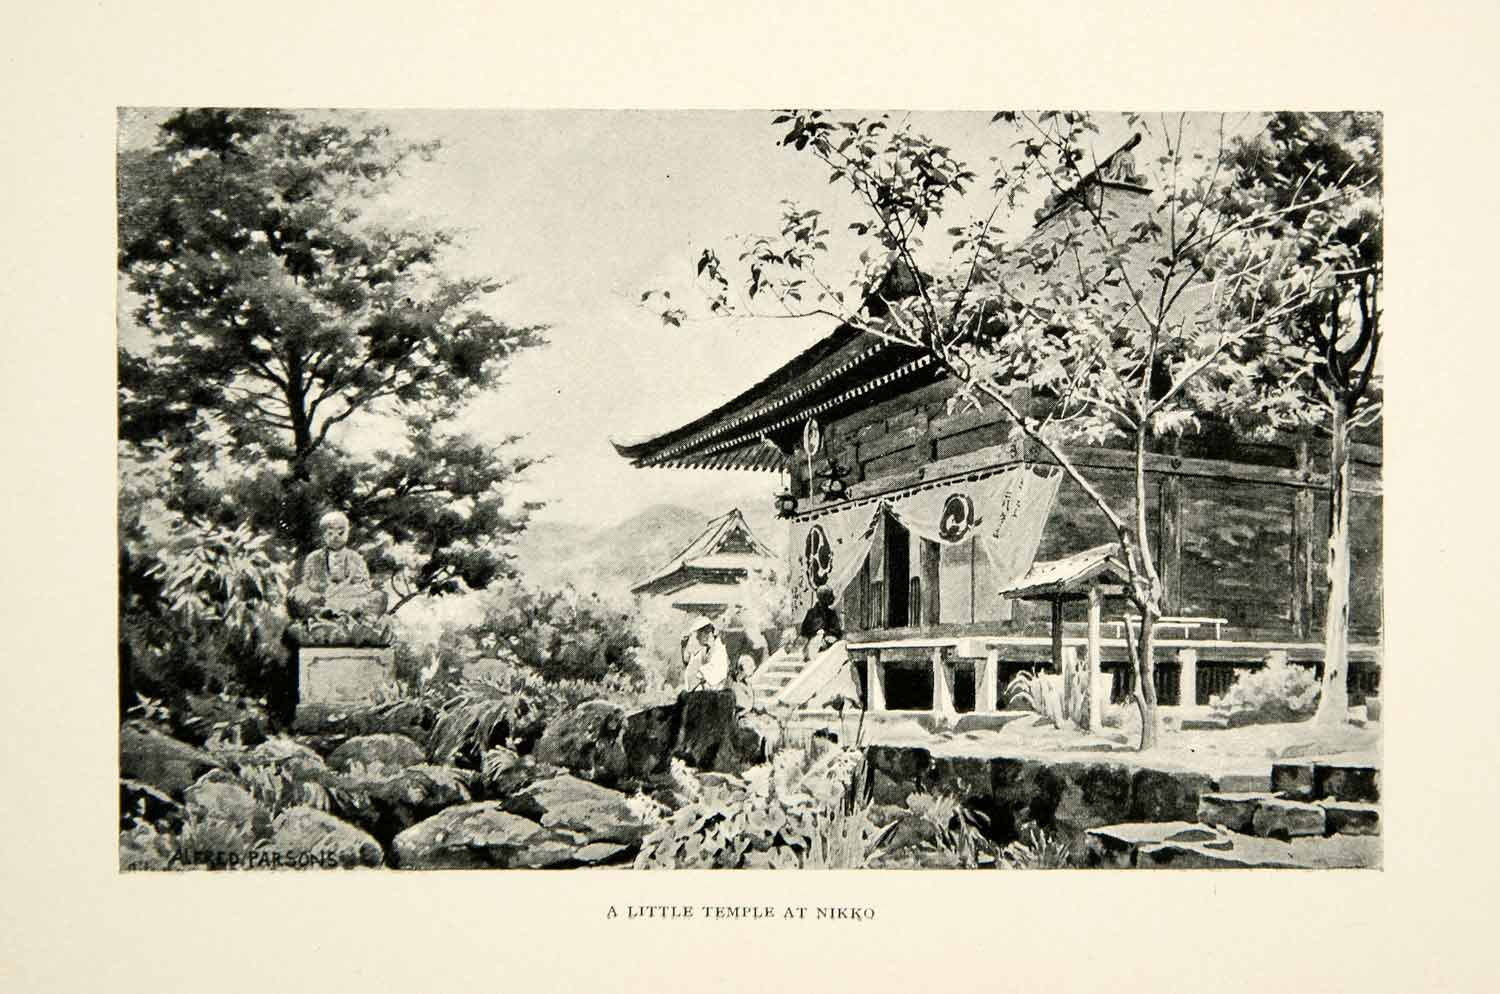 1896 Print Alfred Parsons Nikko Temple Complex Japan UNESCO Site Buddha XGED1